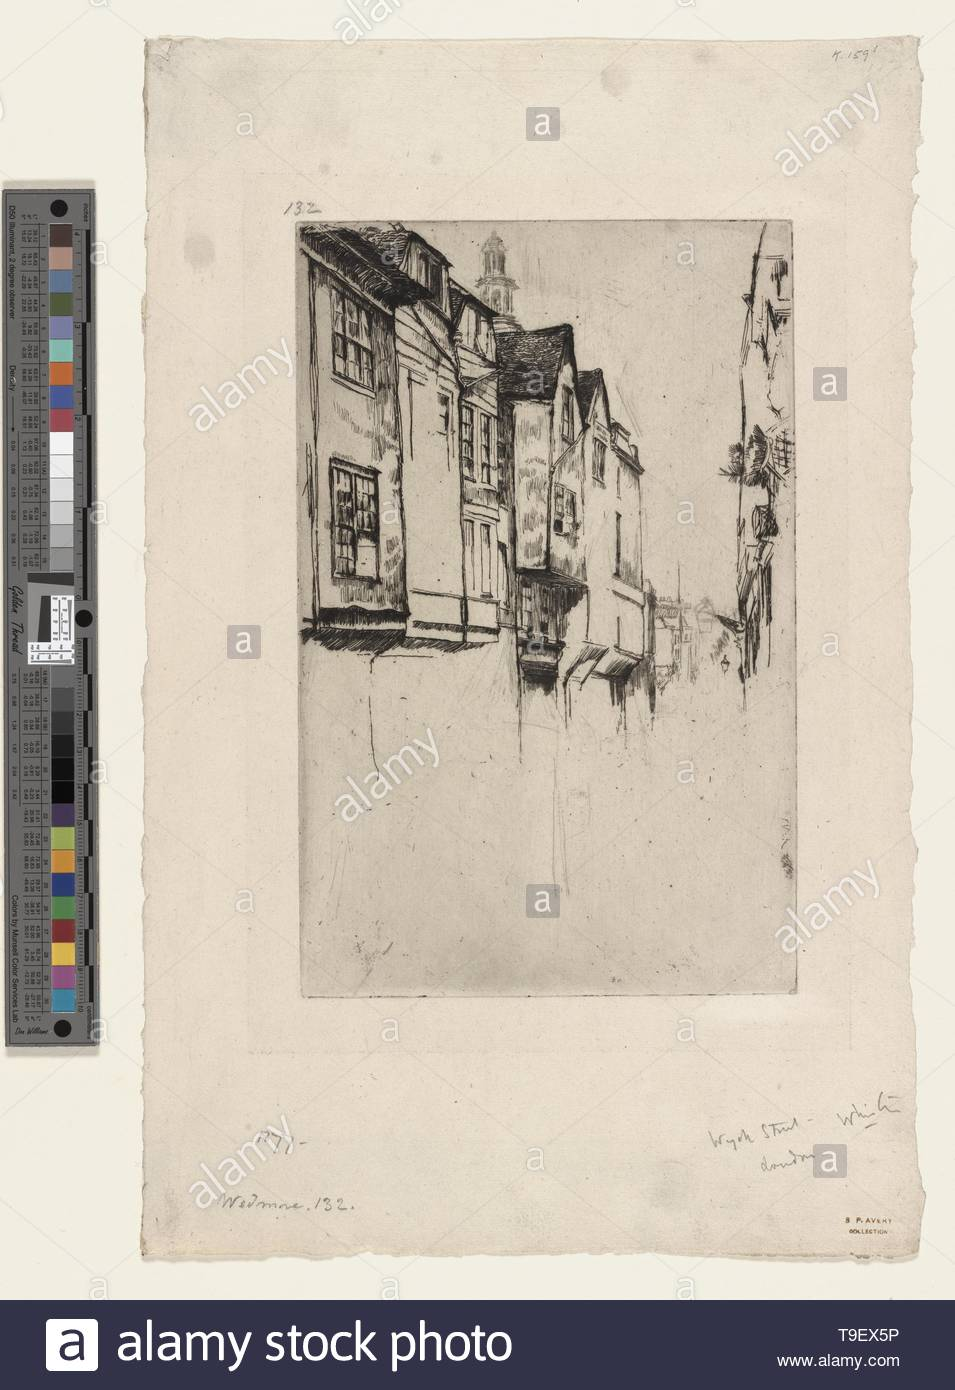 Whistler,JamesMcNeill(1834-1903)-Wych Street - Stock Image